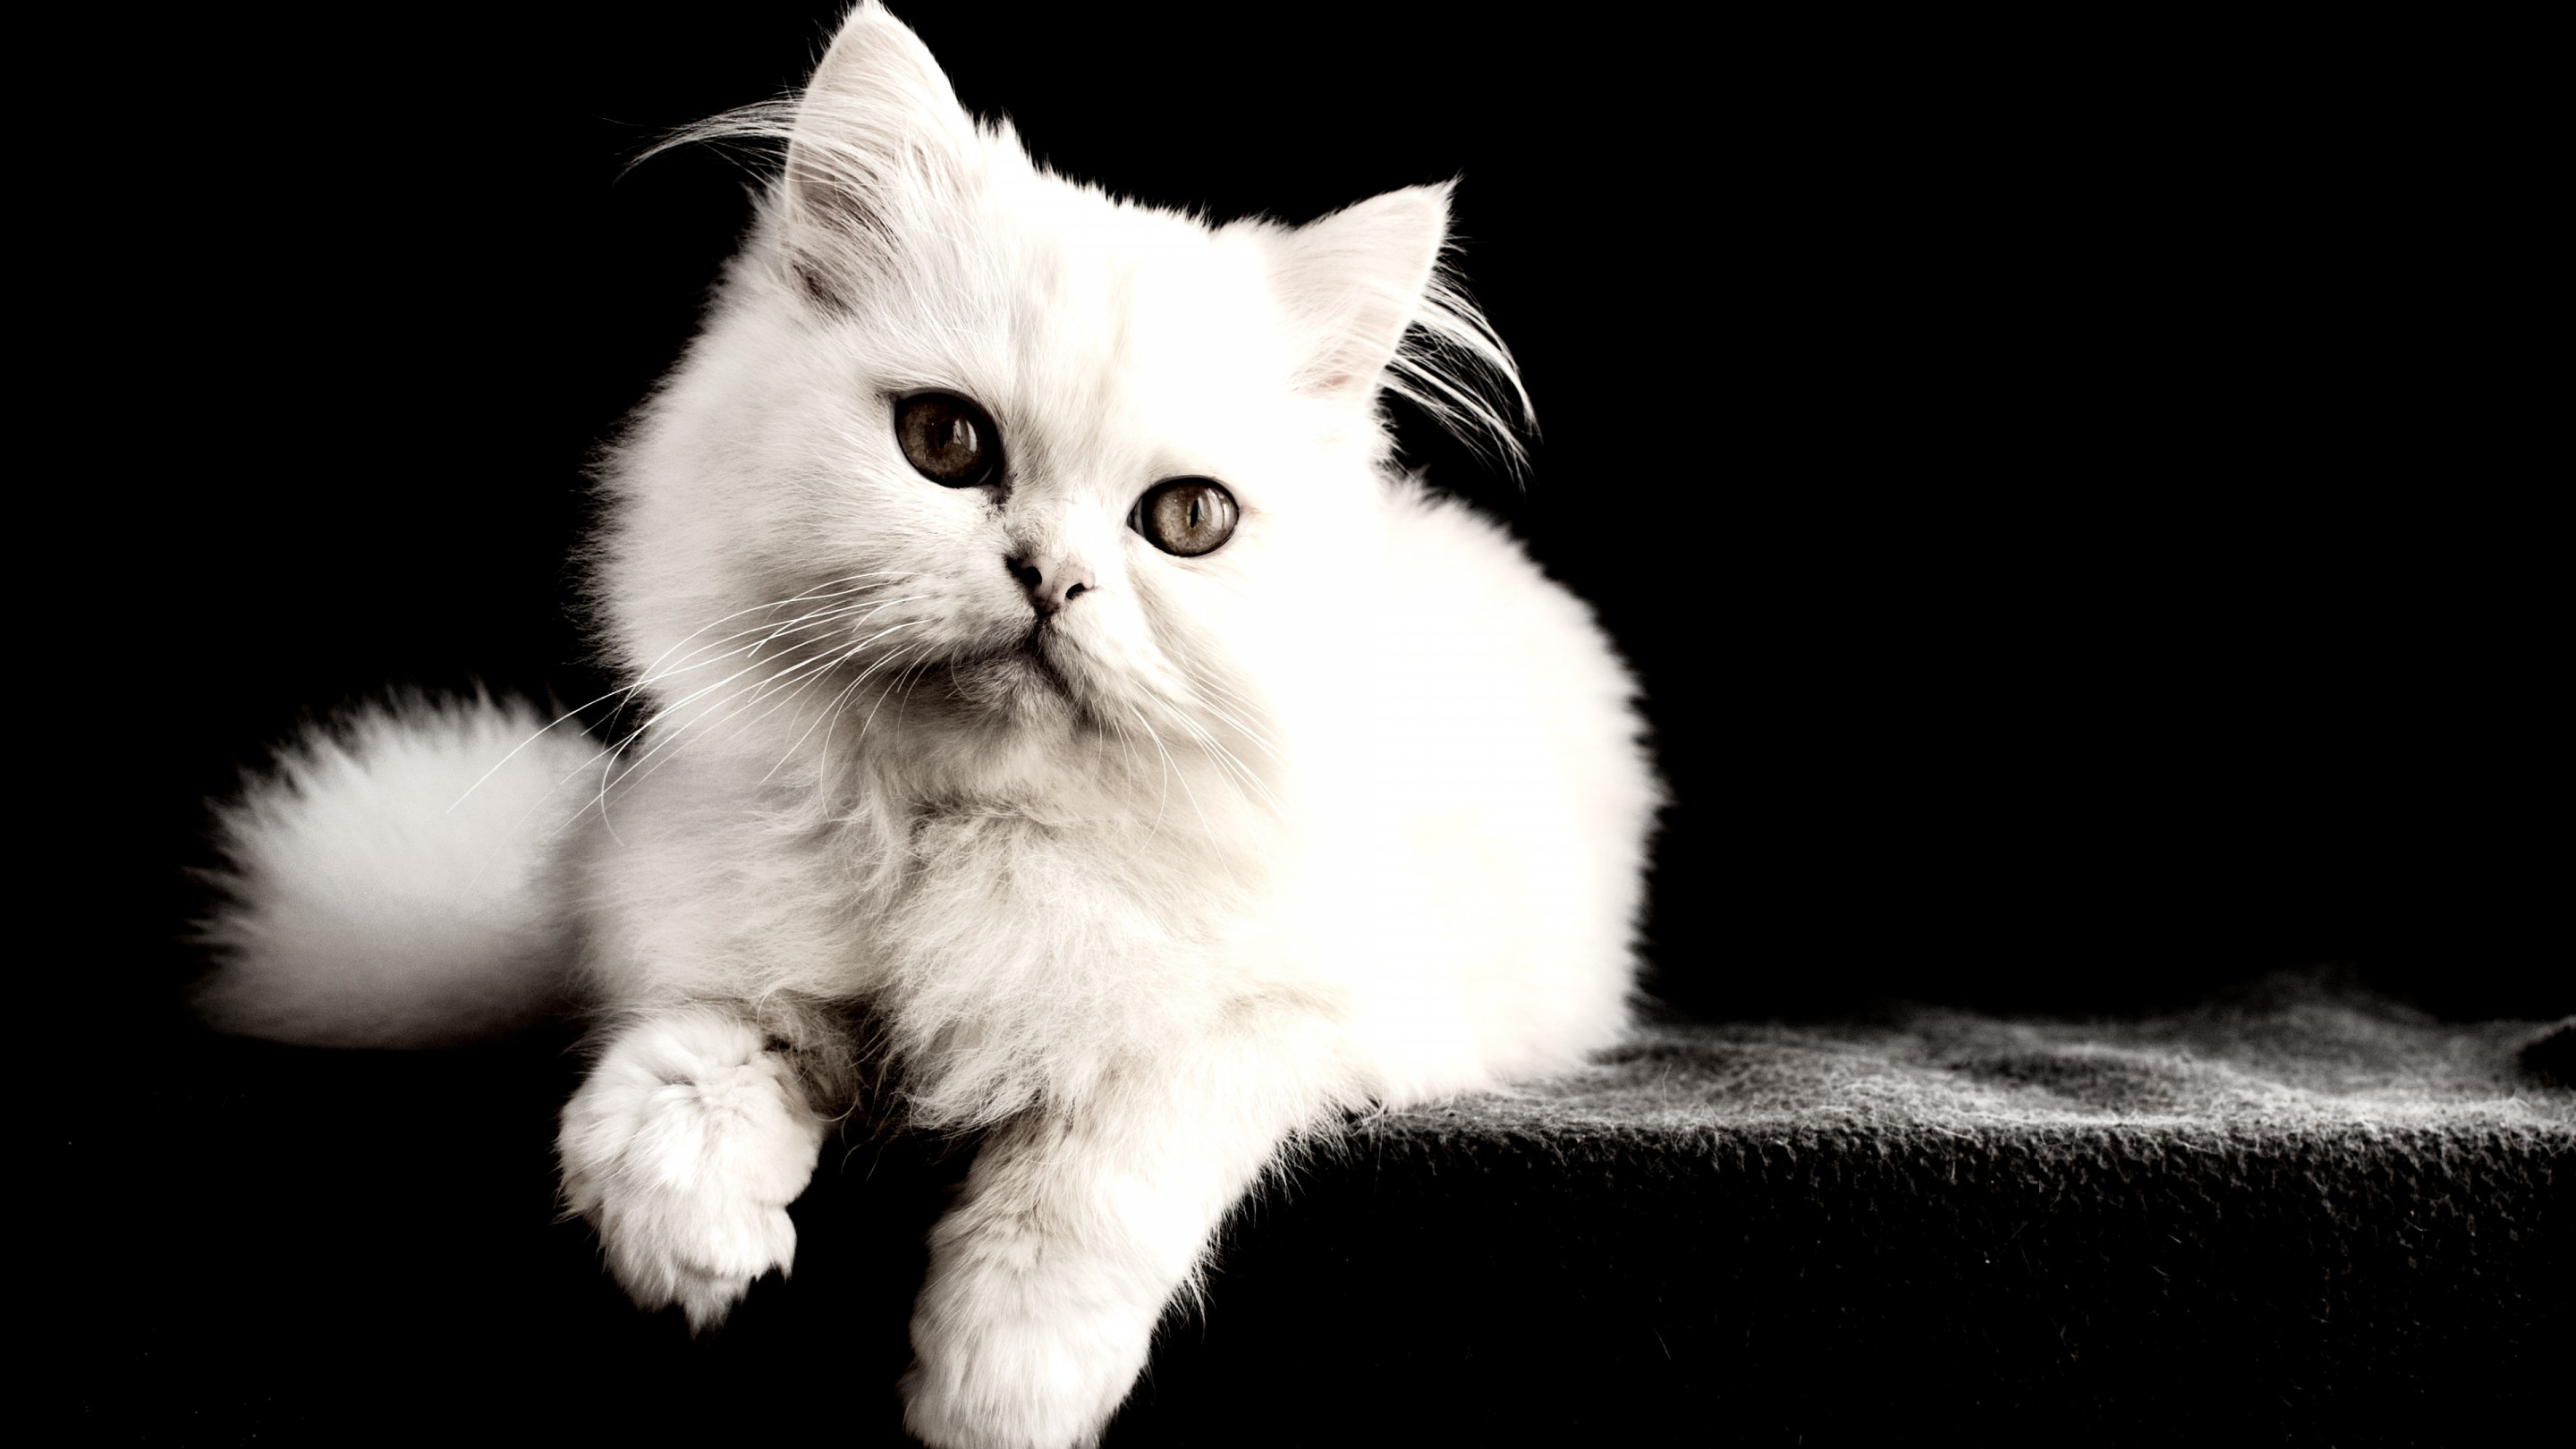 White cat wallpaper 2880x1620